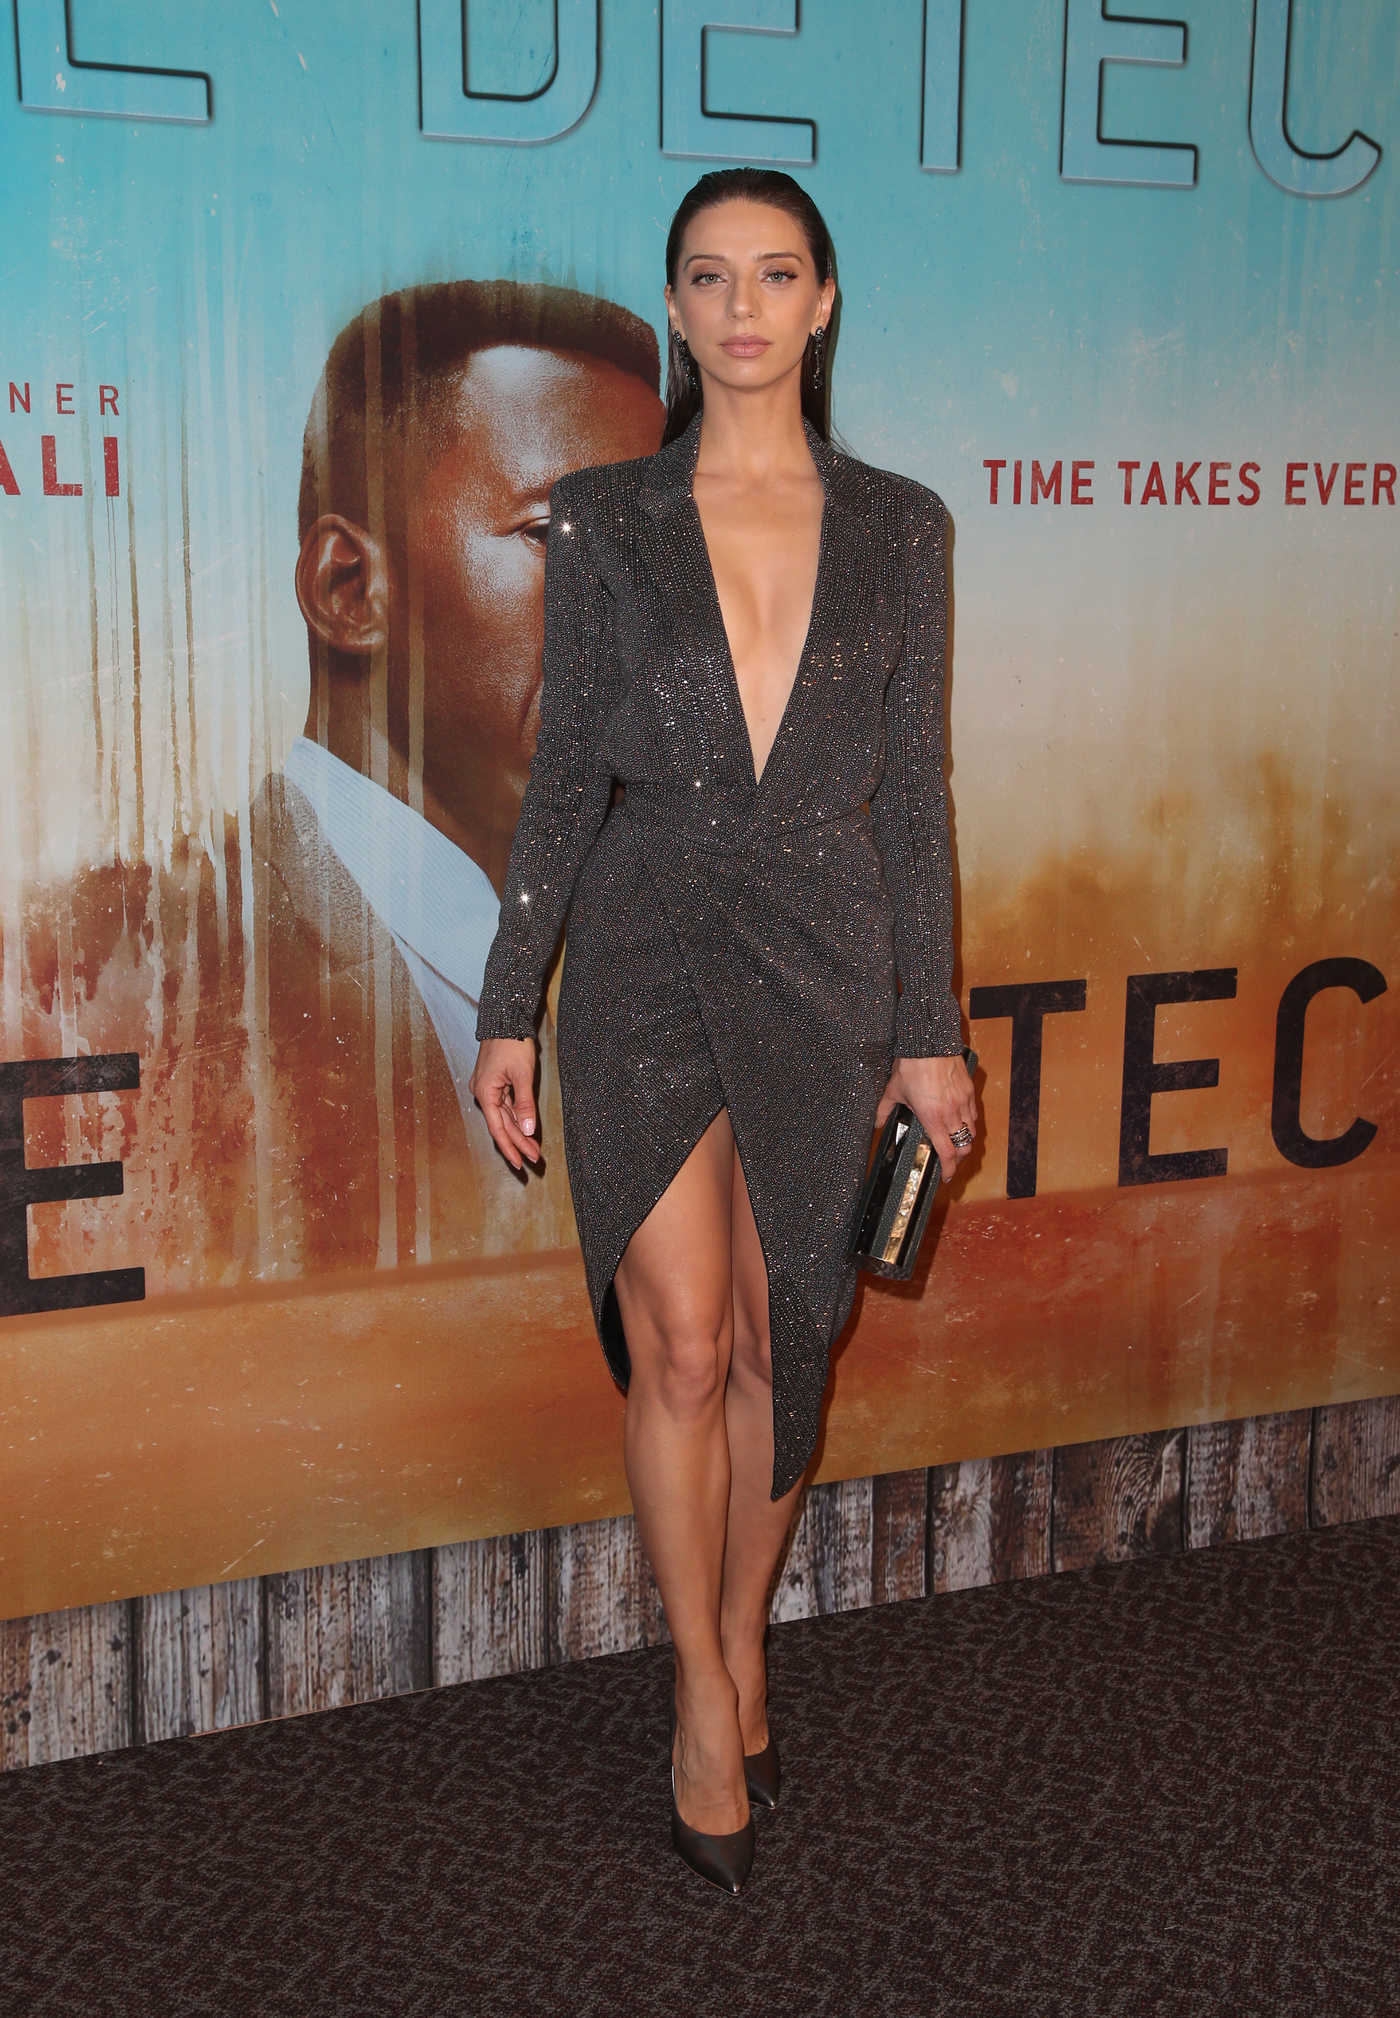 Angela Sarafyan Attends True Detective Season 3 Premiere in Los Angeles 01/10/2019